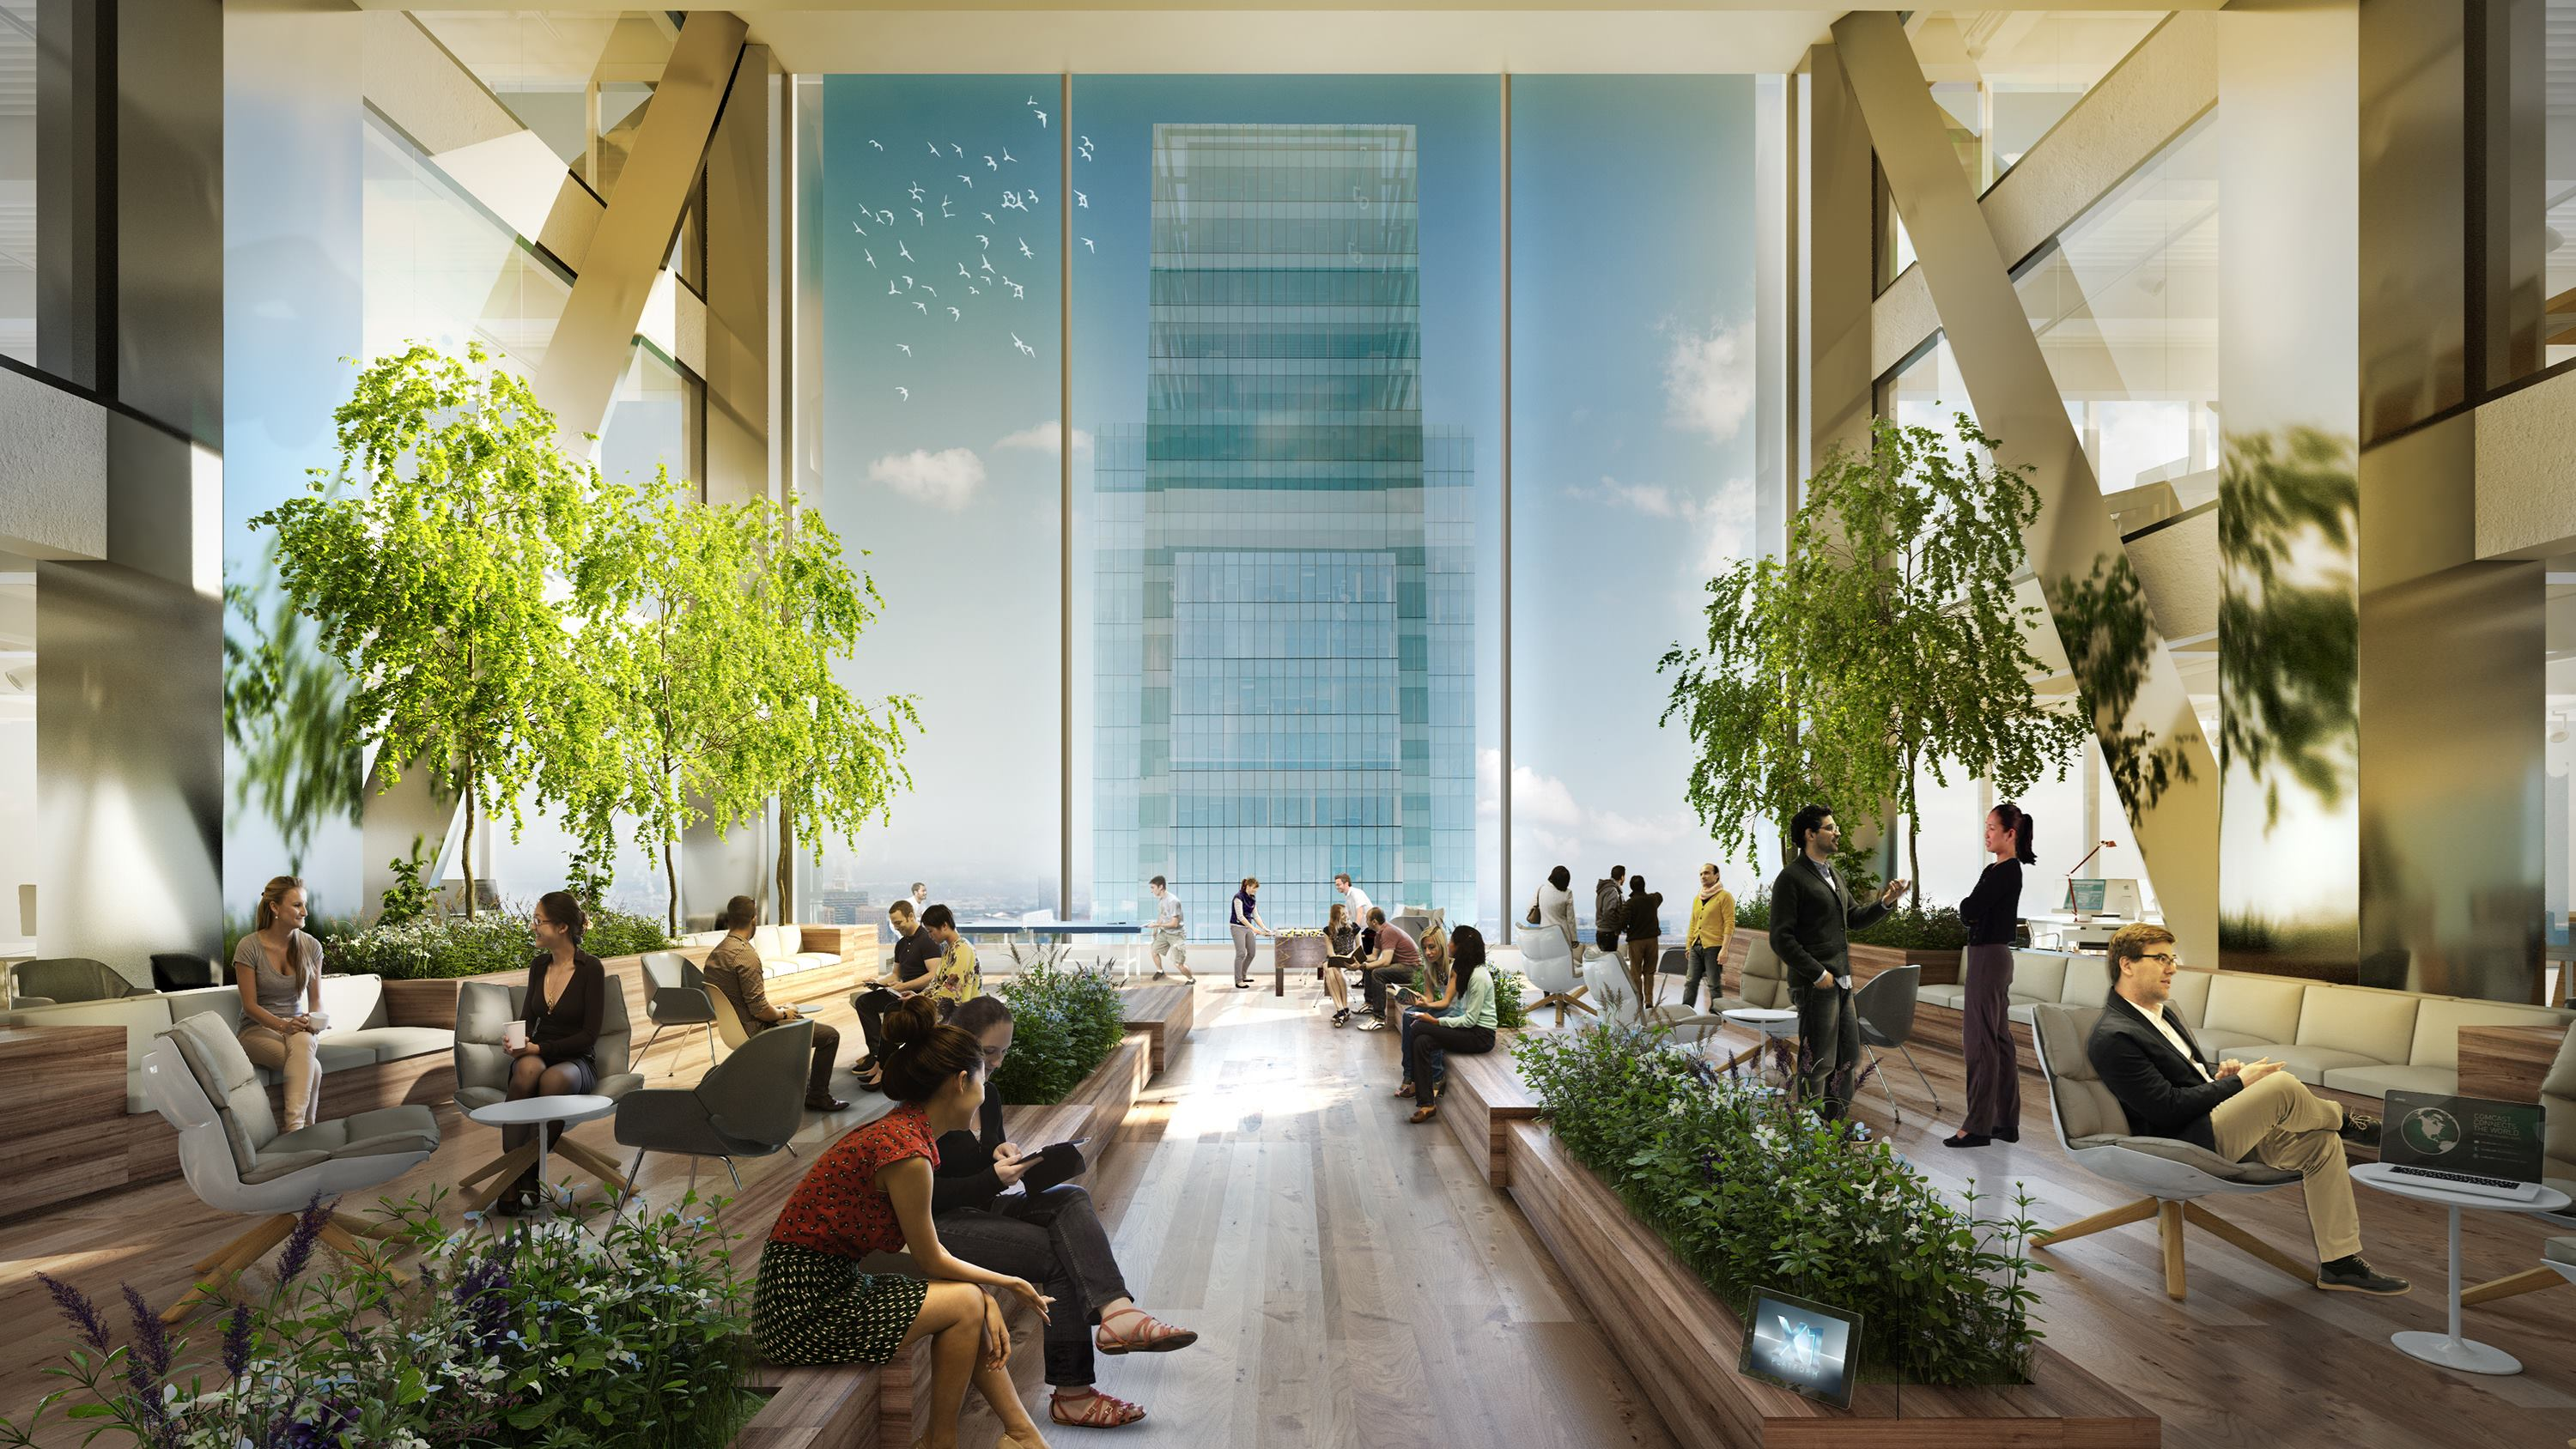 Comcast Picks Gensler To Design Interiors Of New